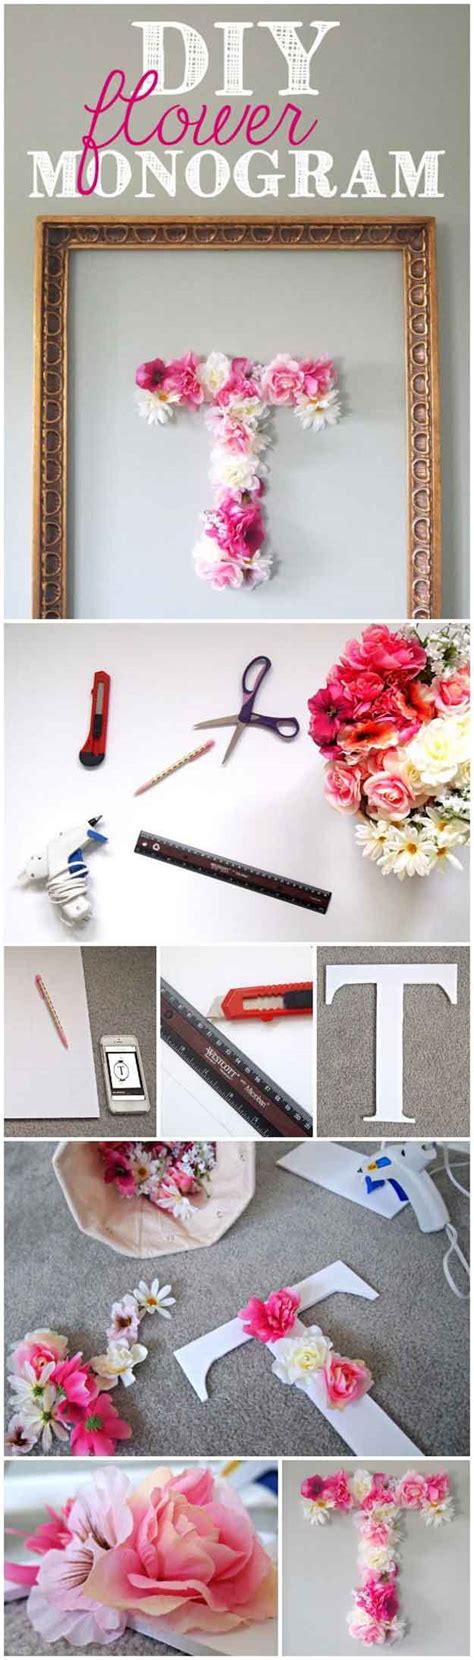 diy projects for teens diy projects for teens bedroom diy ready